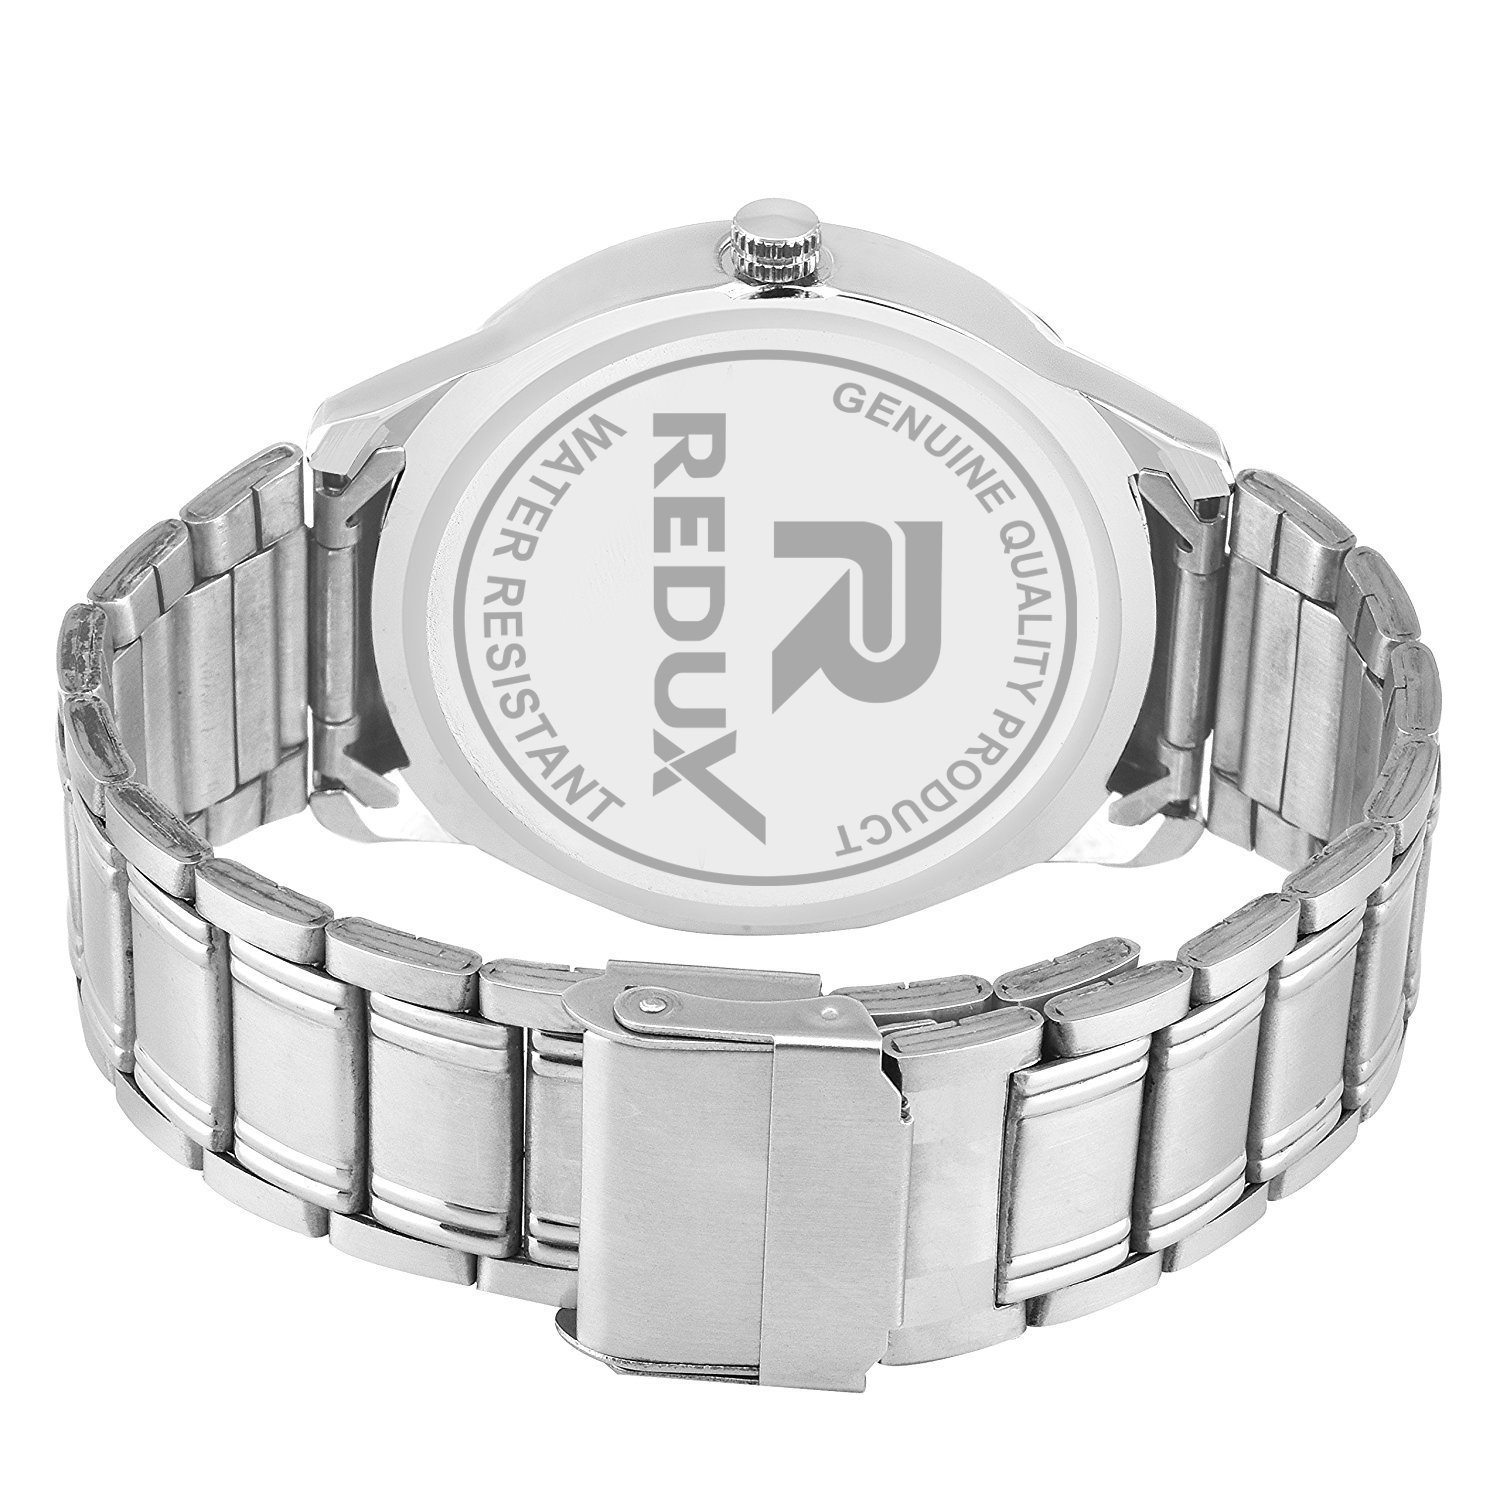 Fashion week Redux wrist sporty watches shop for girls